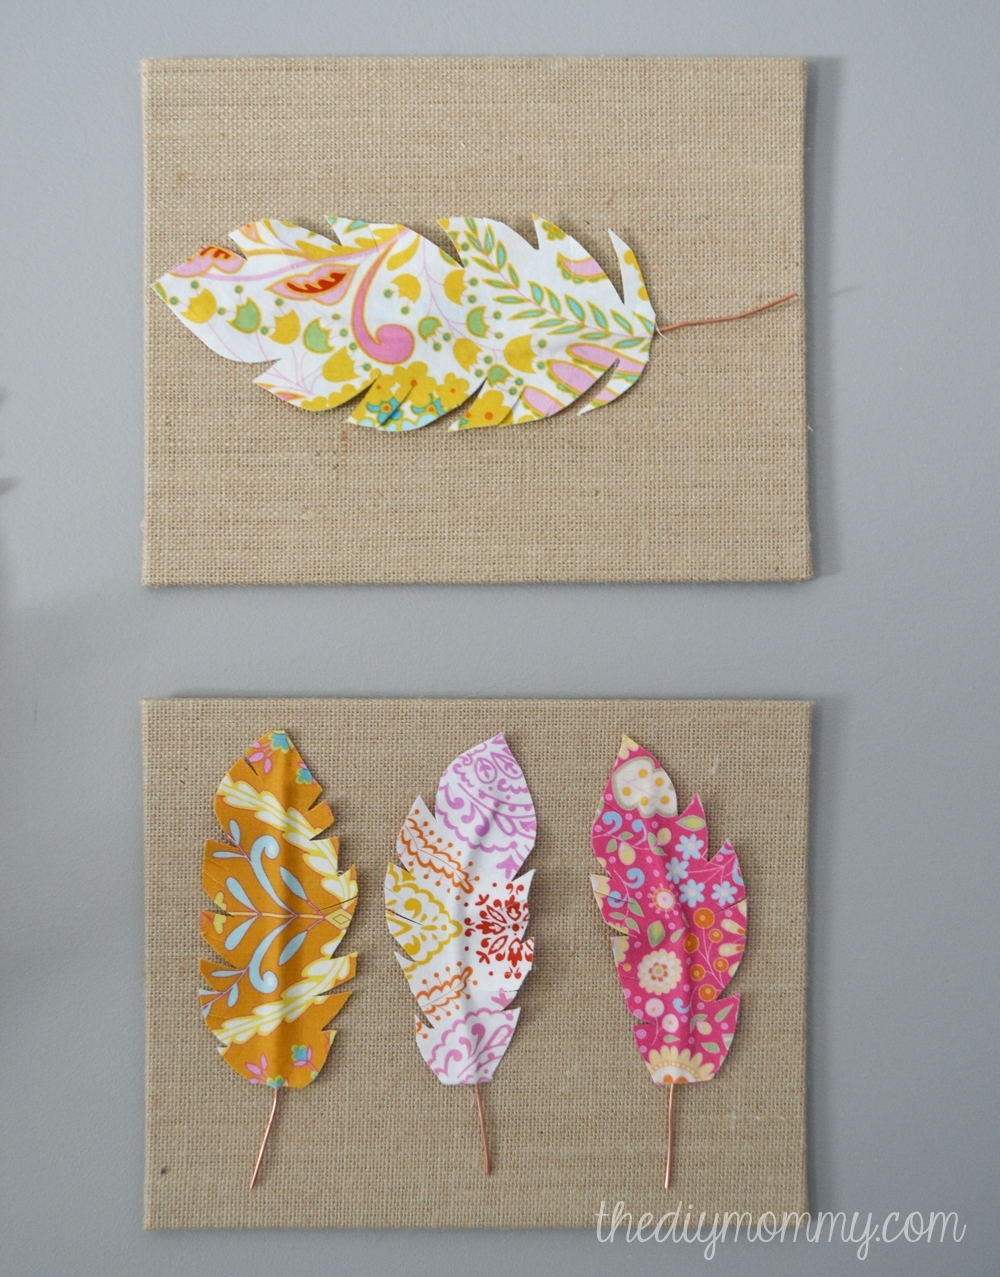 Make Fabric Feather Wall Art | The Diy Mommy Within Most Popular Burlap Fabric Wall Art (Gallery 3 of 15)